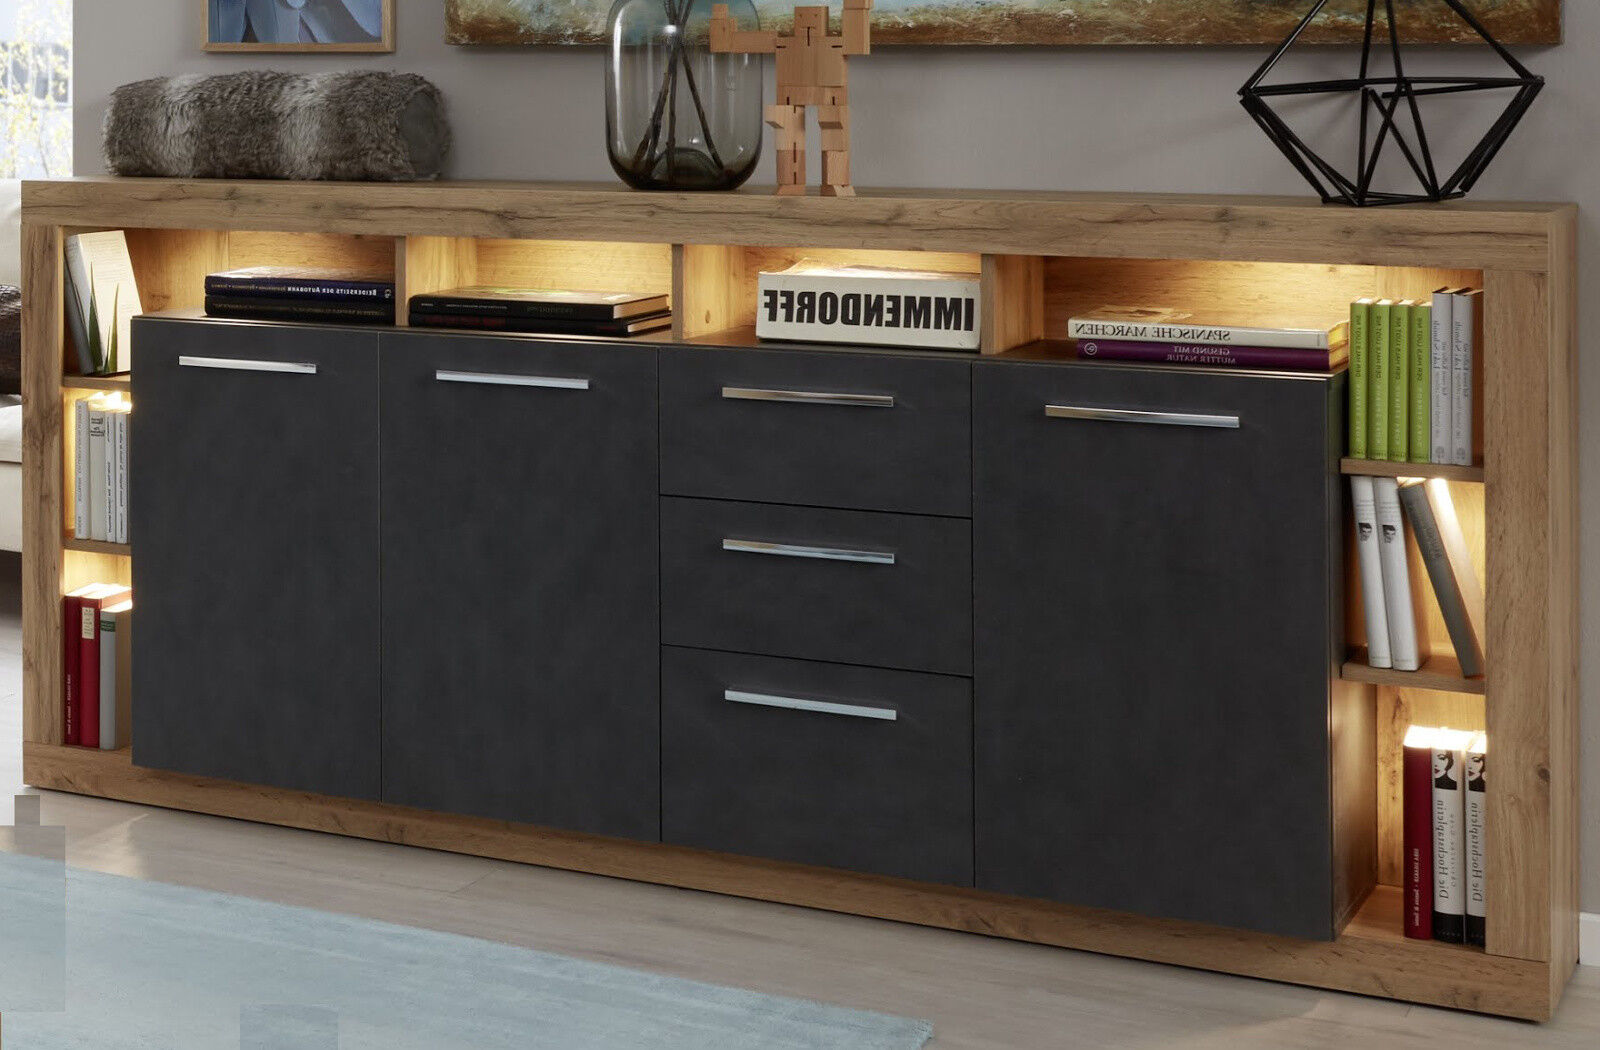 Esszimmer Sideboard Weiß Led Xpress Kommode Weiß Esche Grau Wohnzimmer Sideboard Esszimmer Anrichte